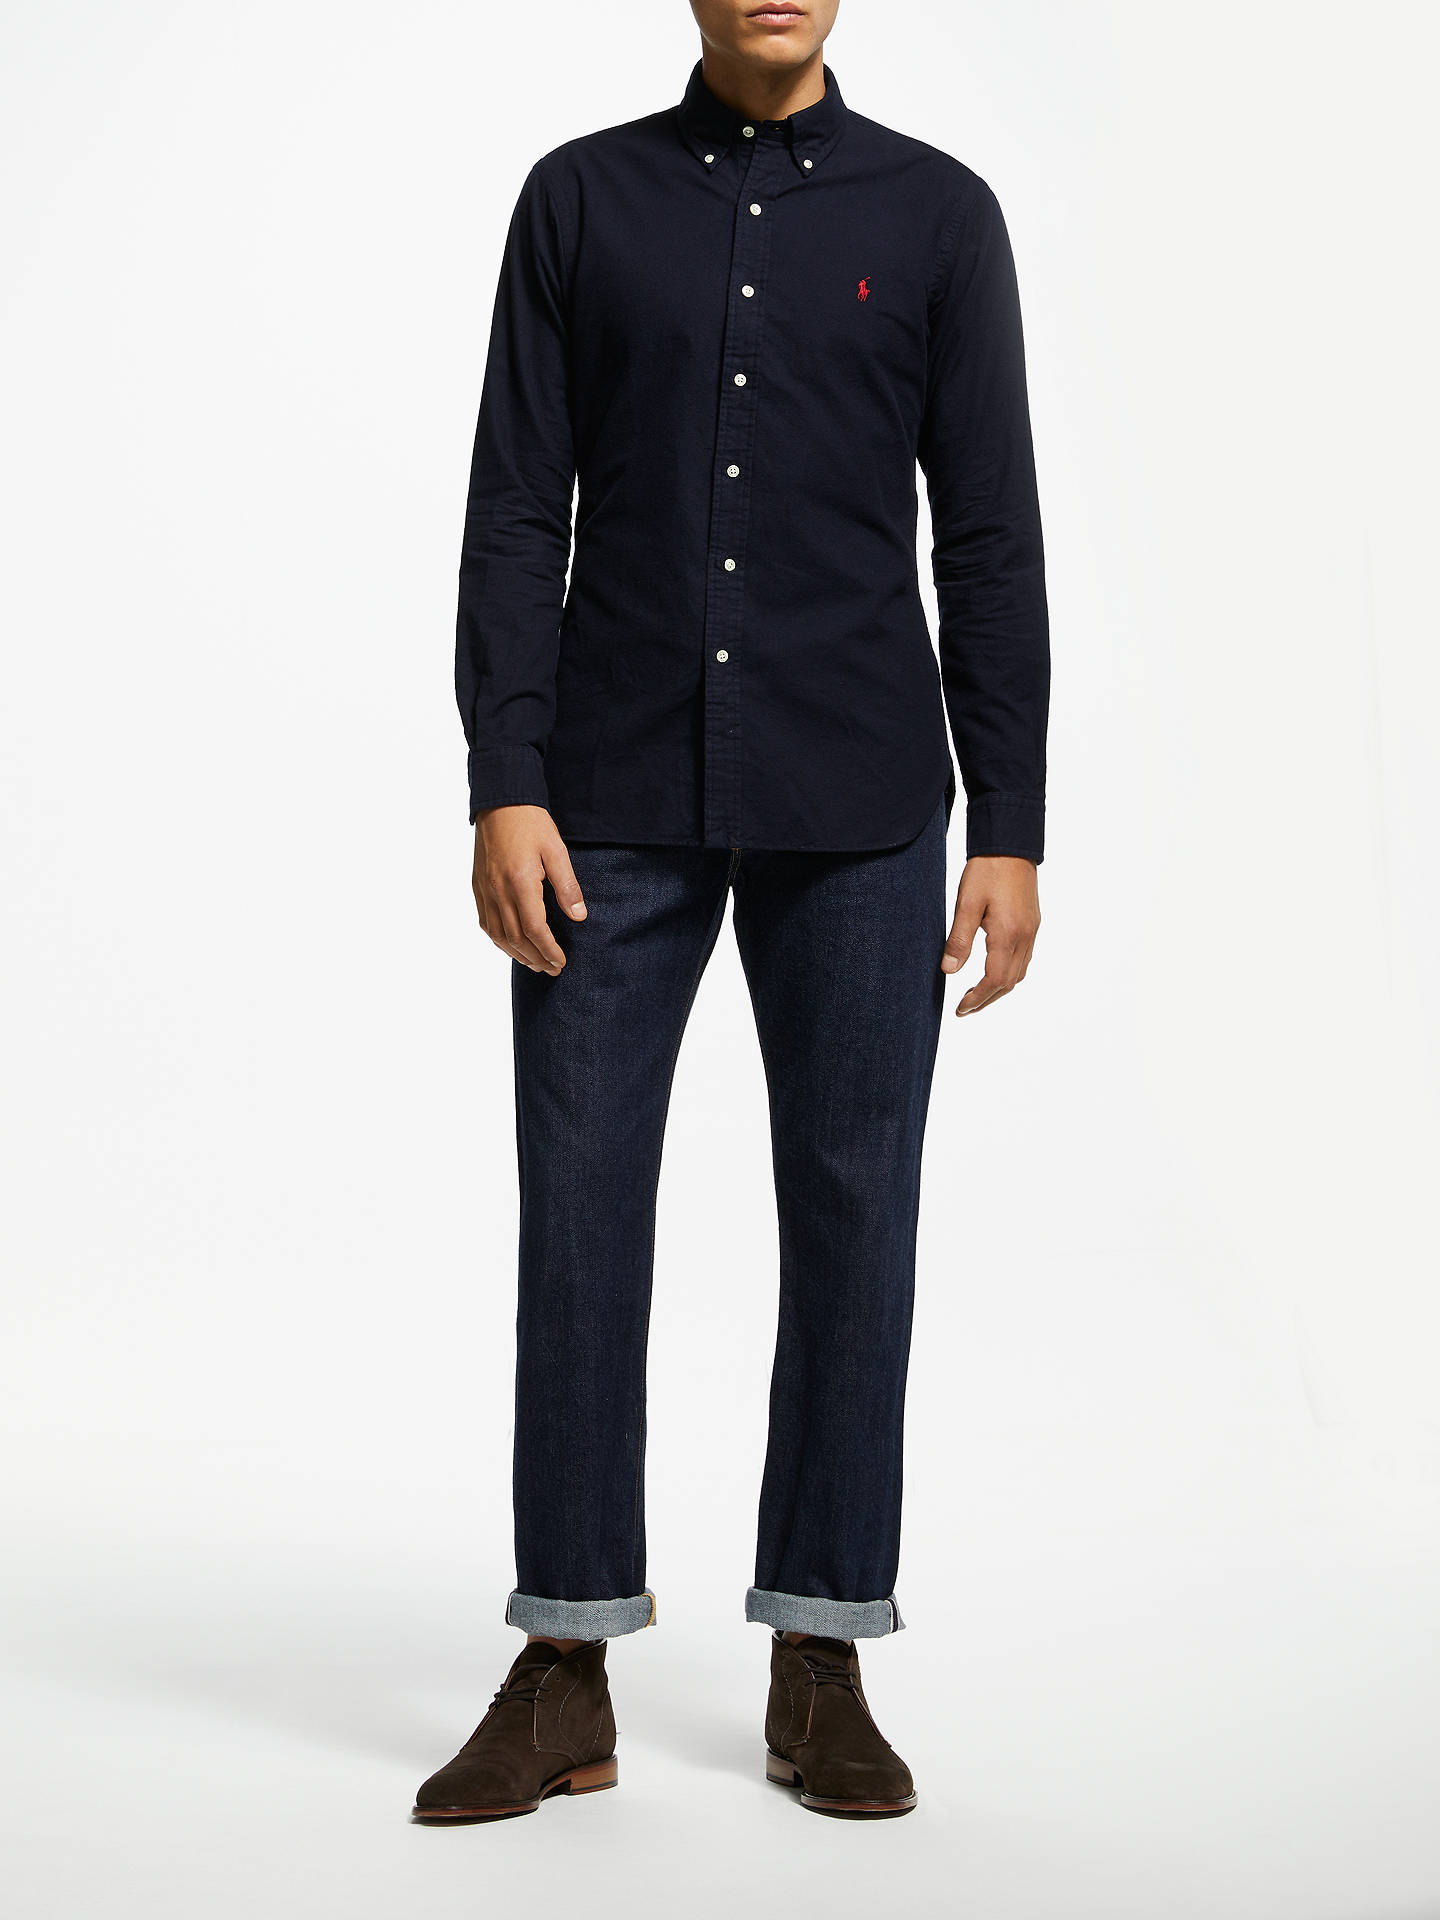 Buy Polo Ralph Lauren Brushed Cotton Shirt, Navy, S Online at johnlewis.com